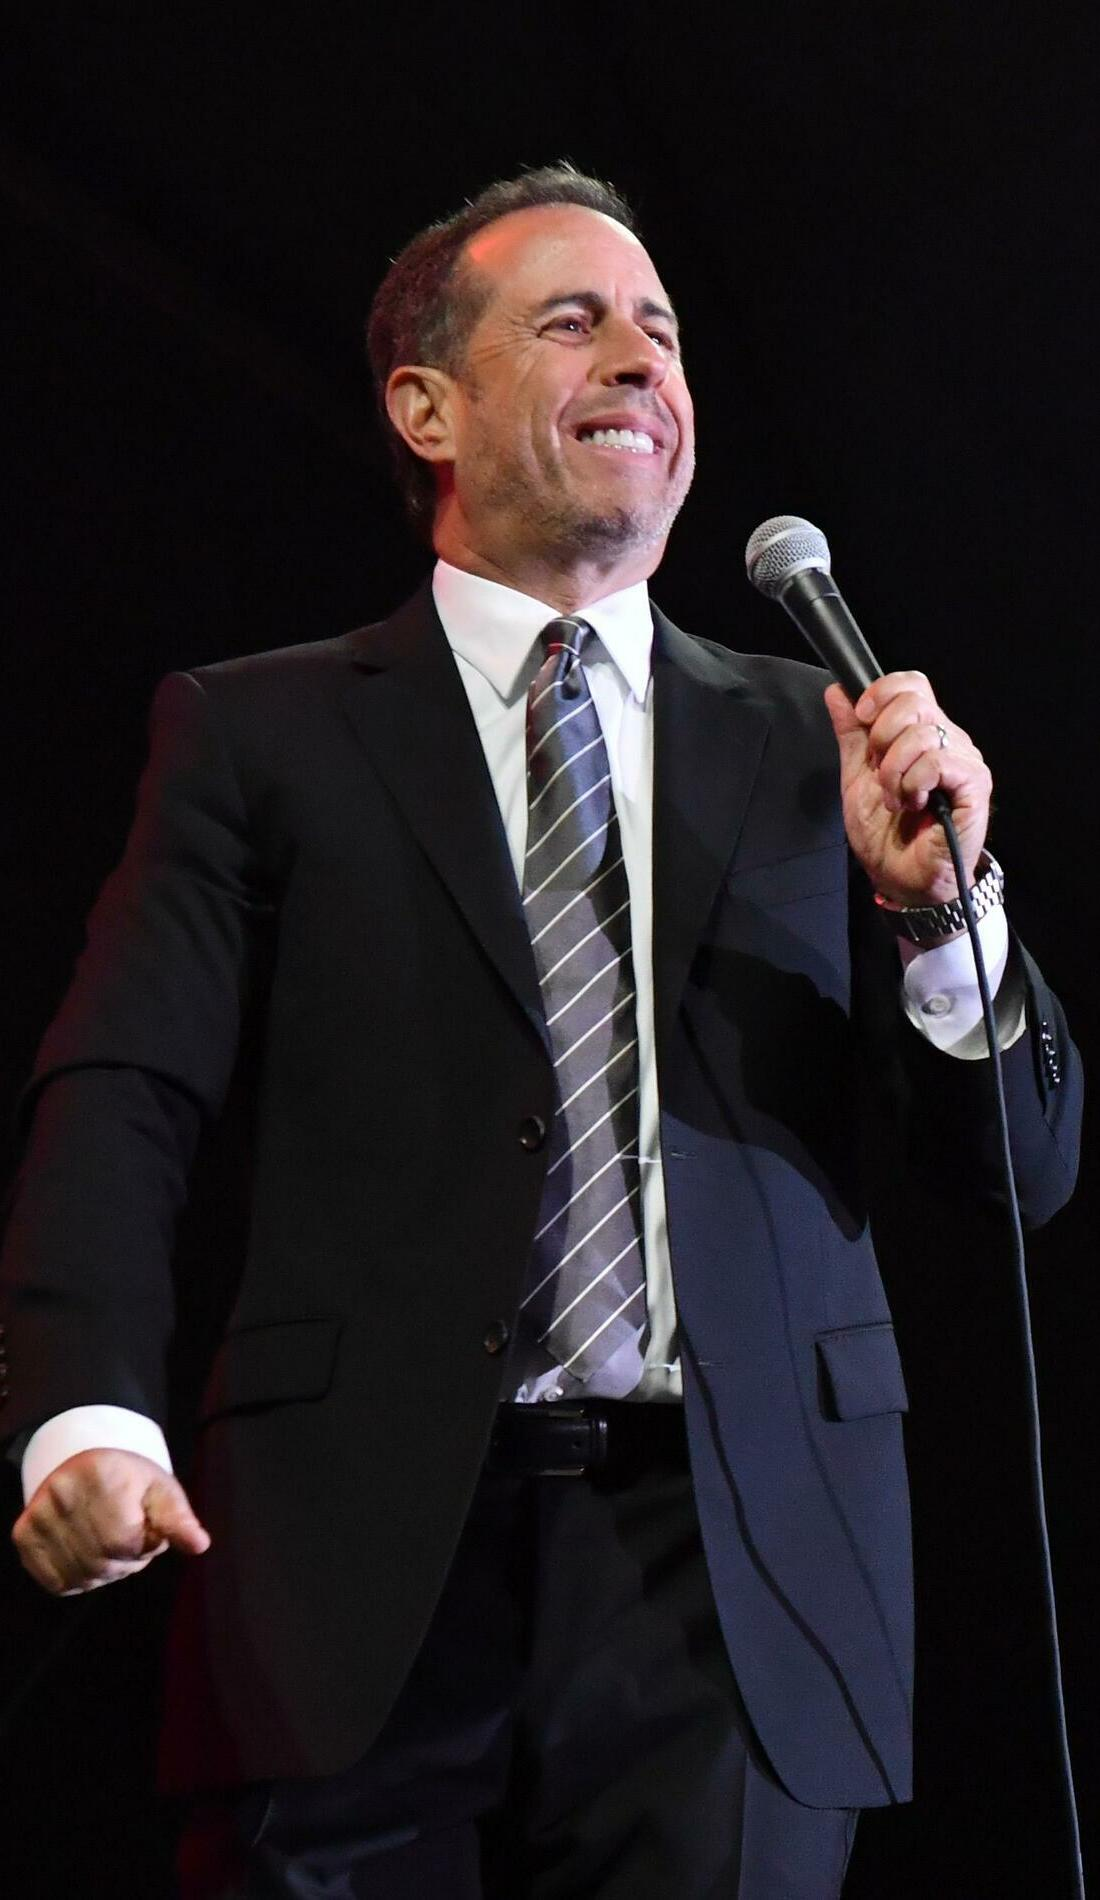 A Jerry Seinfeld live event